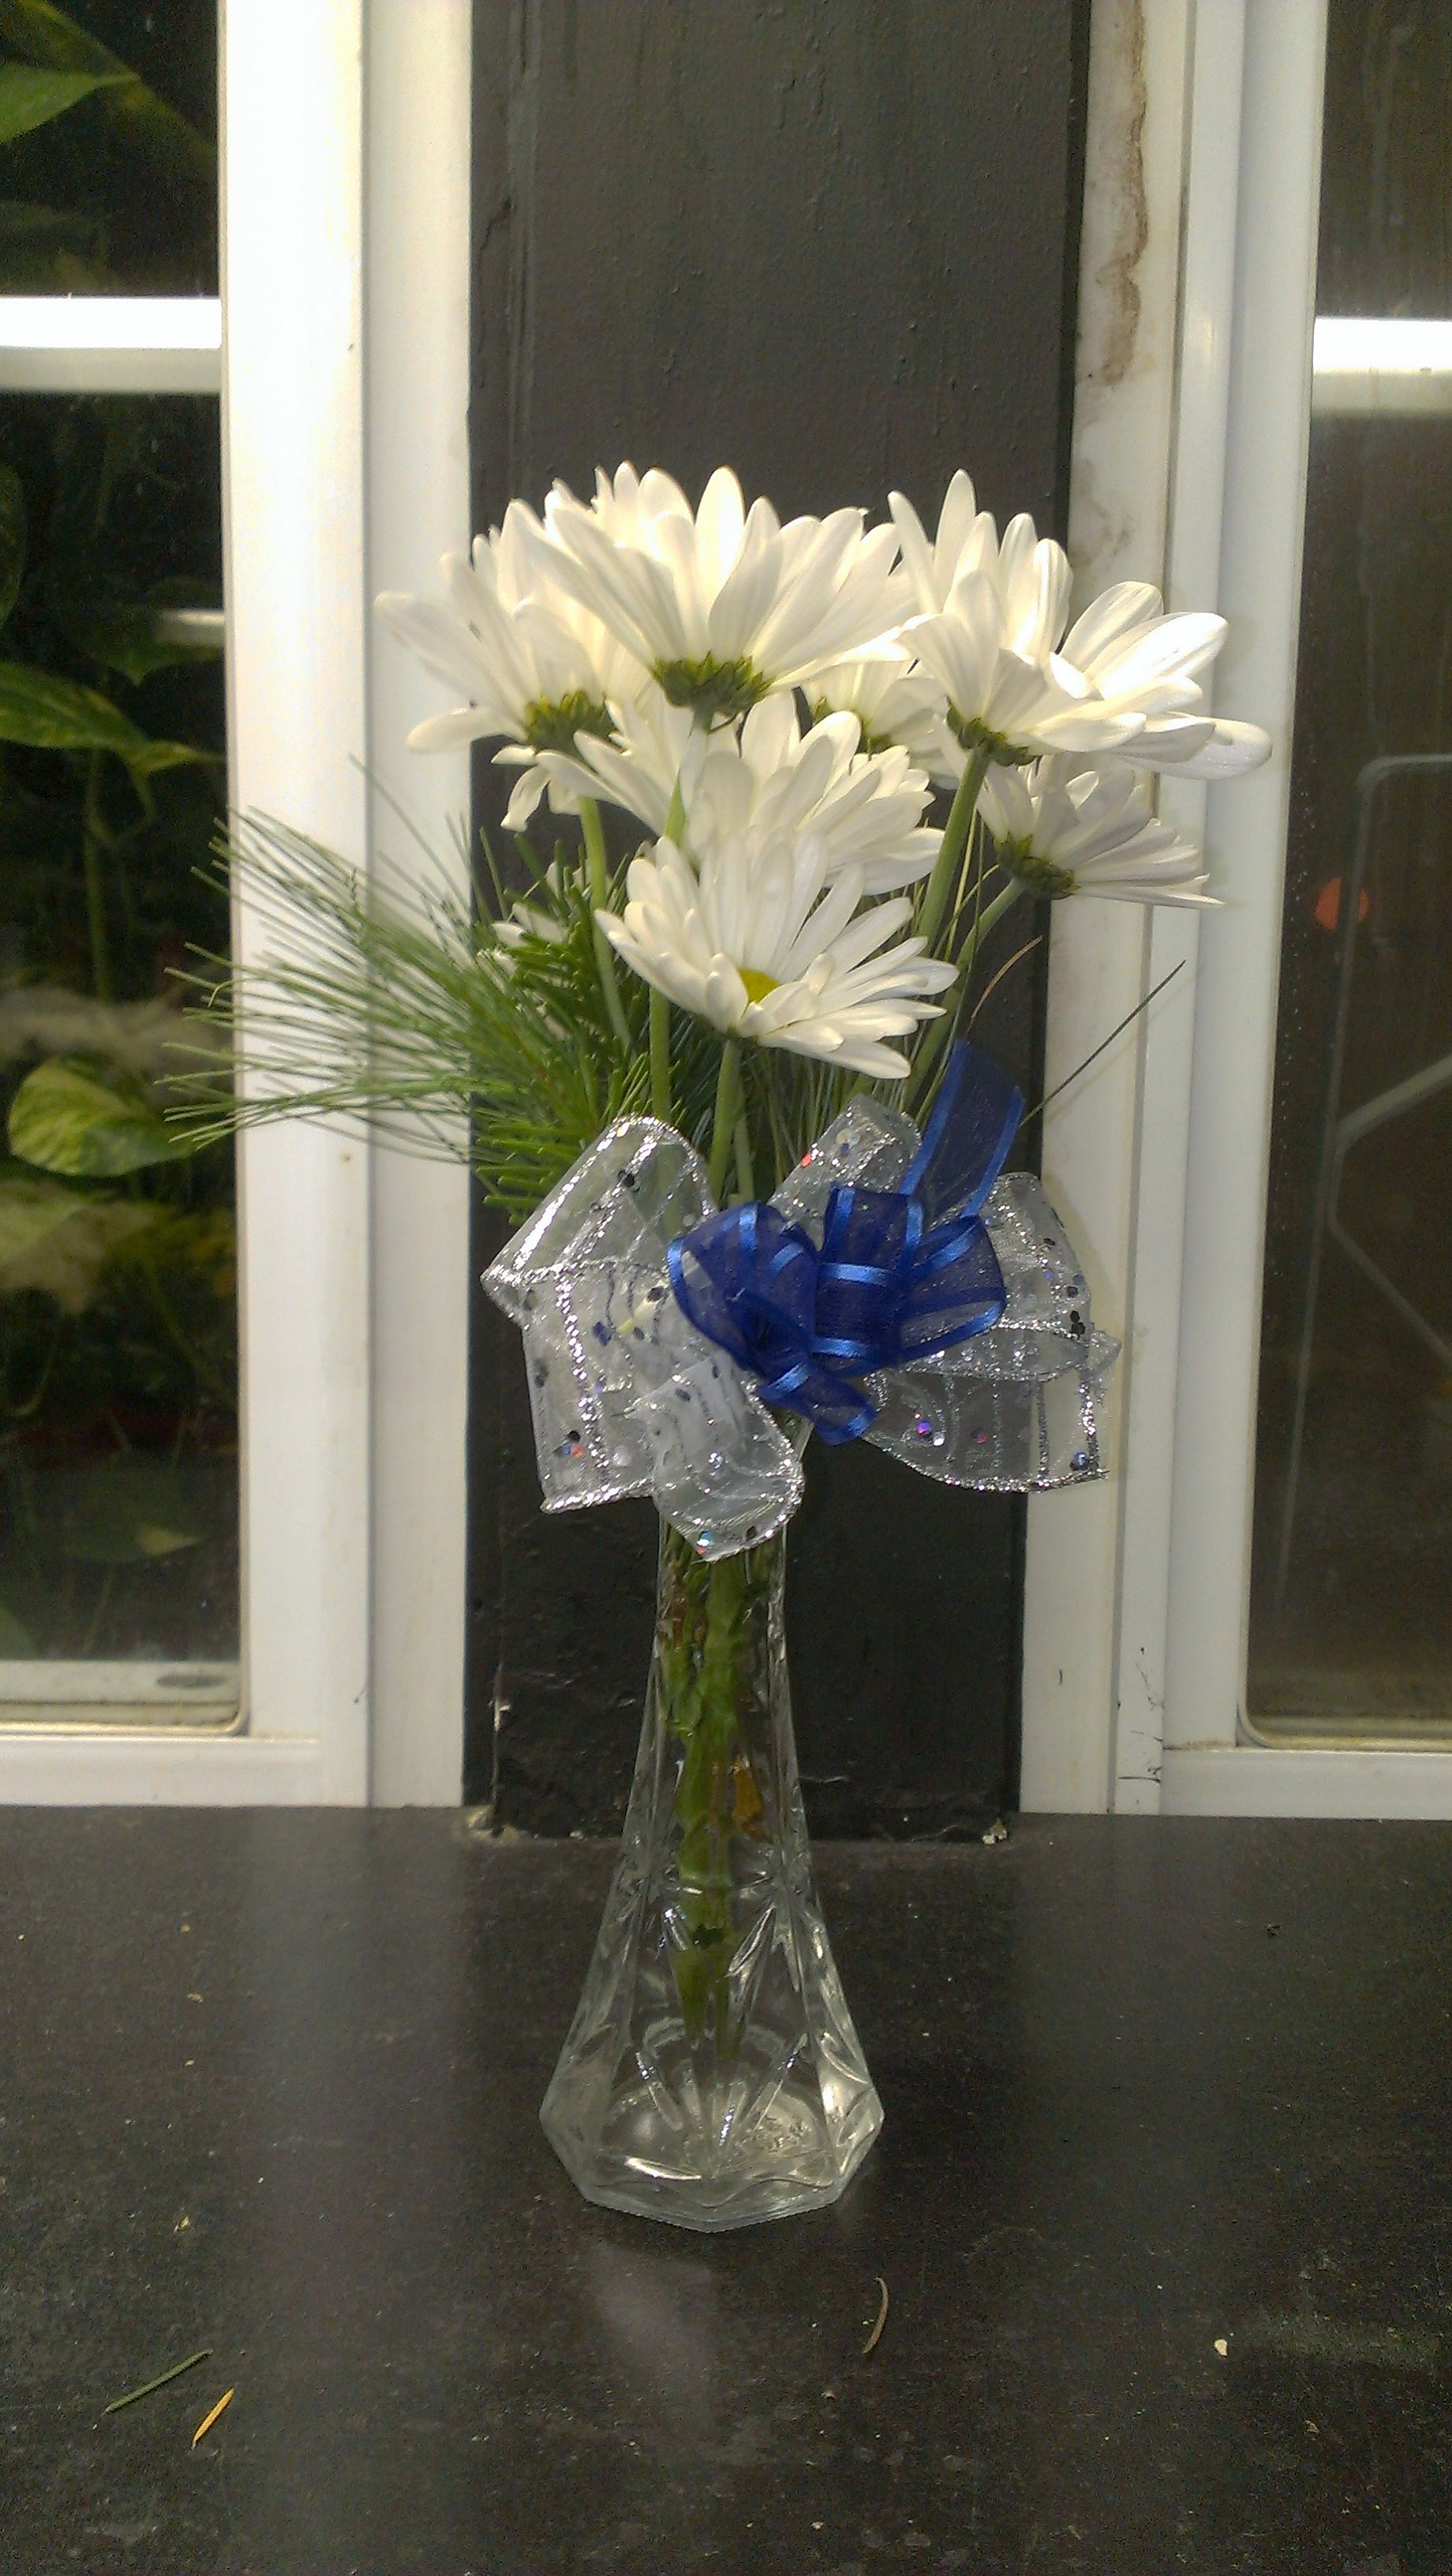 Here is a elegant and quaint centerpiece for any holiday